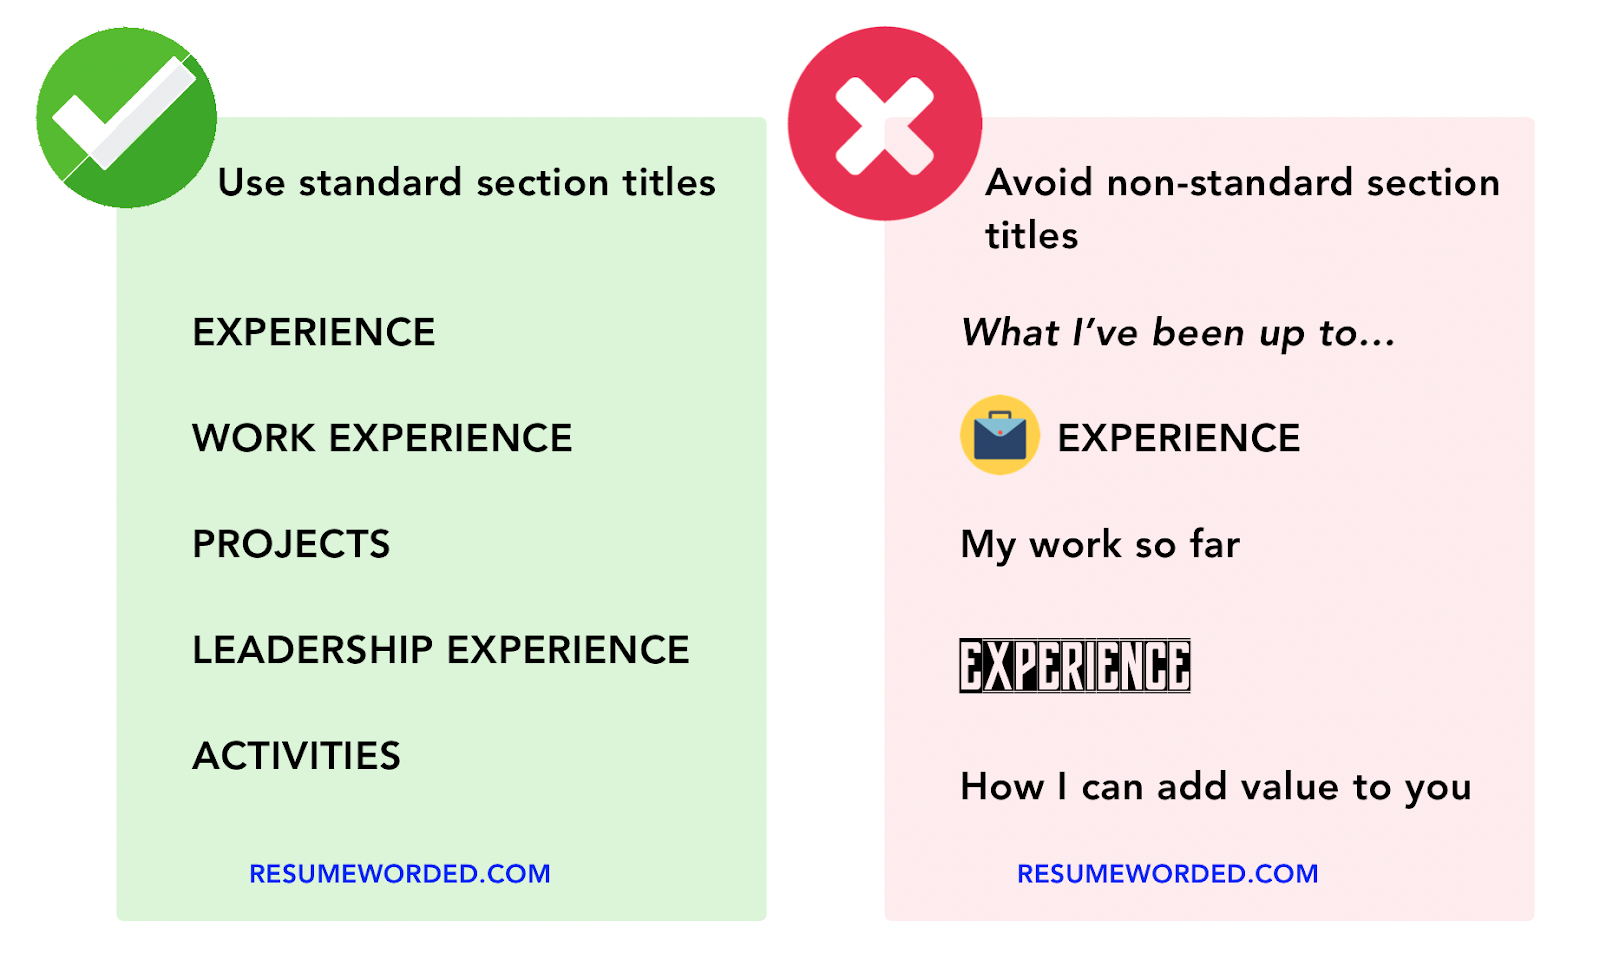 Use standard section titles so your resume gets read correctly by ATS